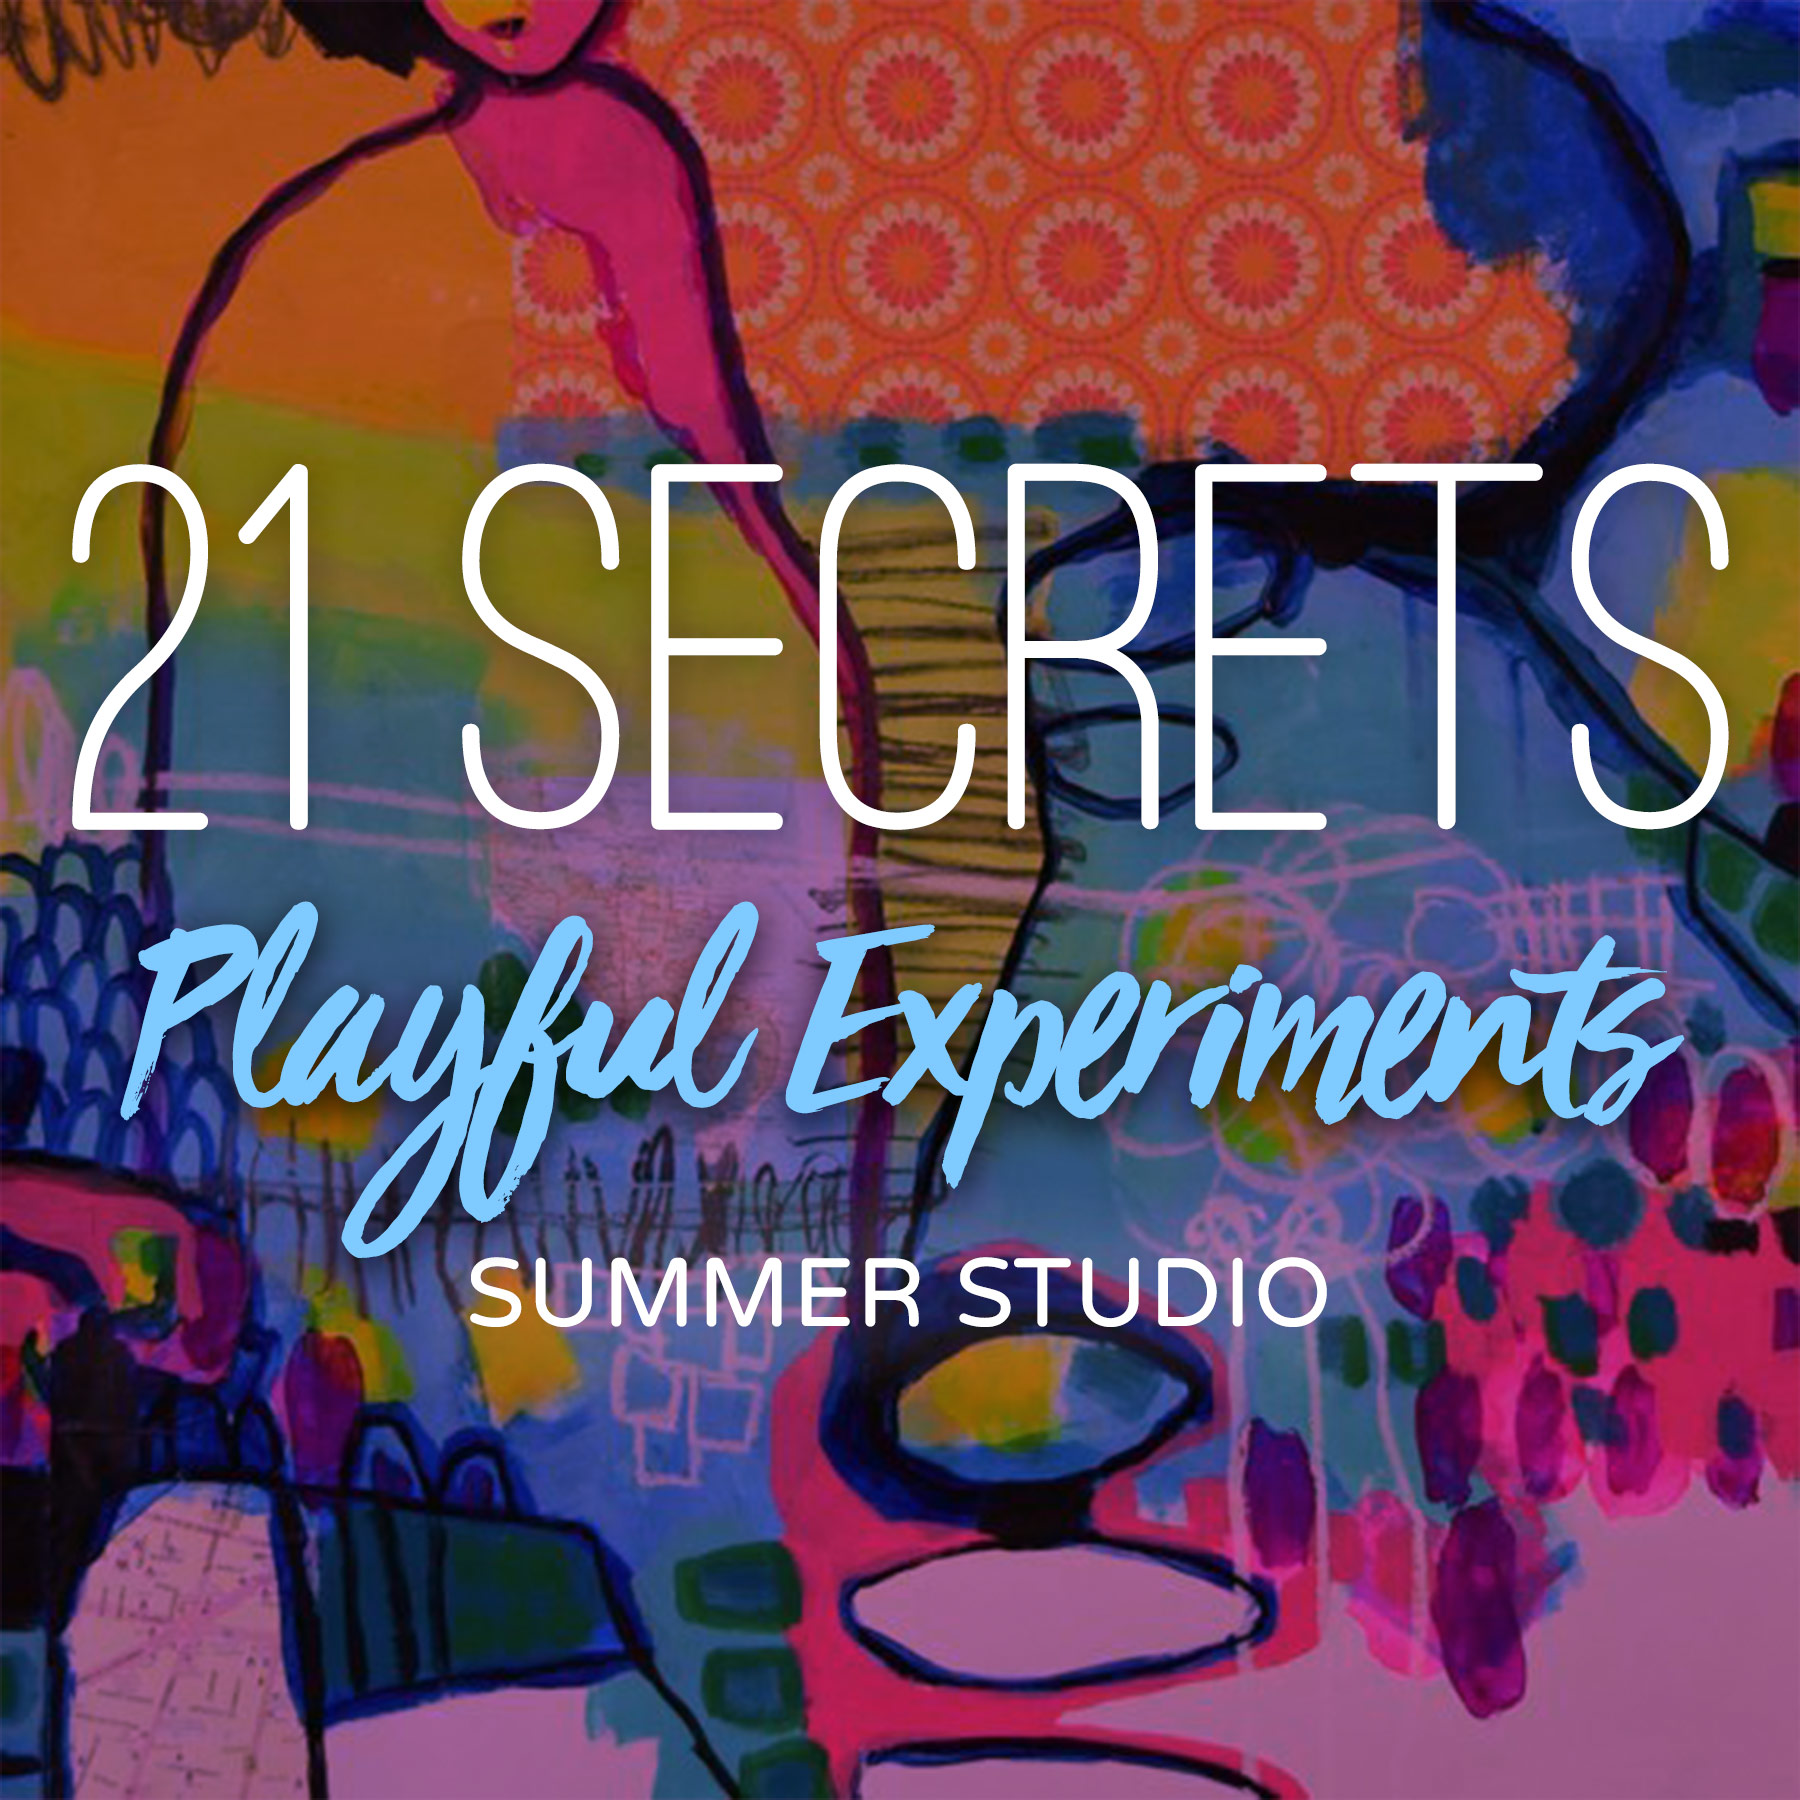 21SECRETS-2019-SummerStudio-PlayfulExperiments